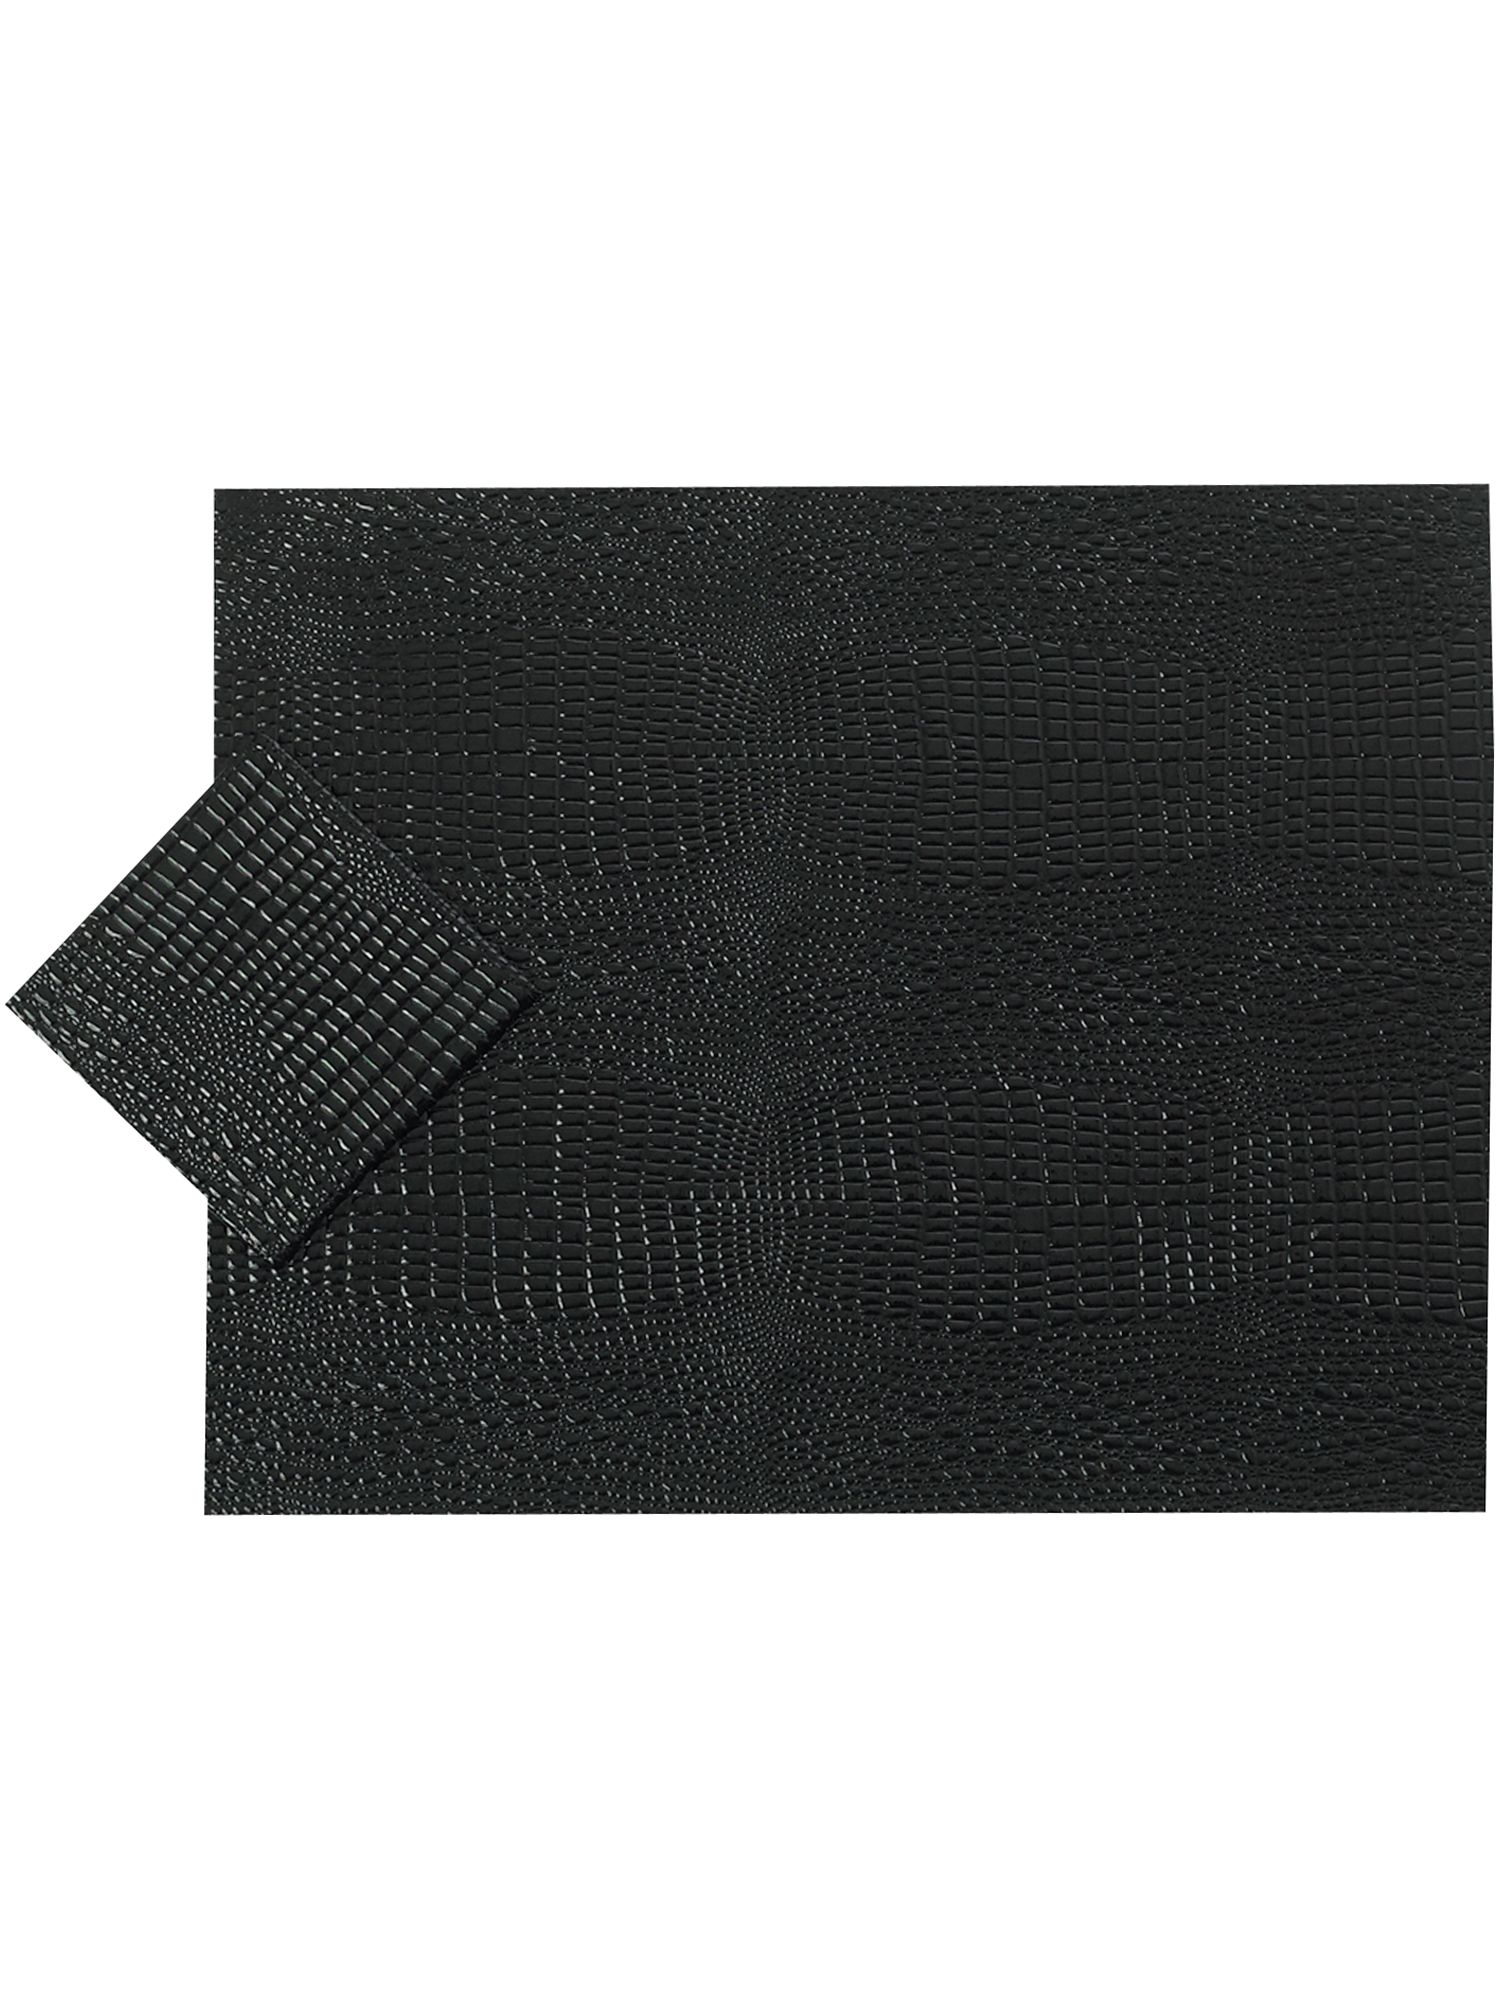 Mock croc black tablemat range